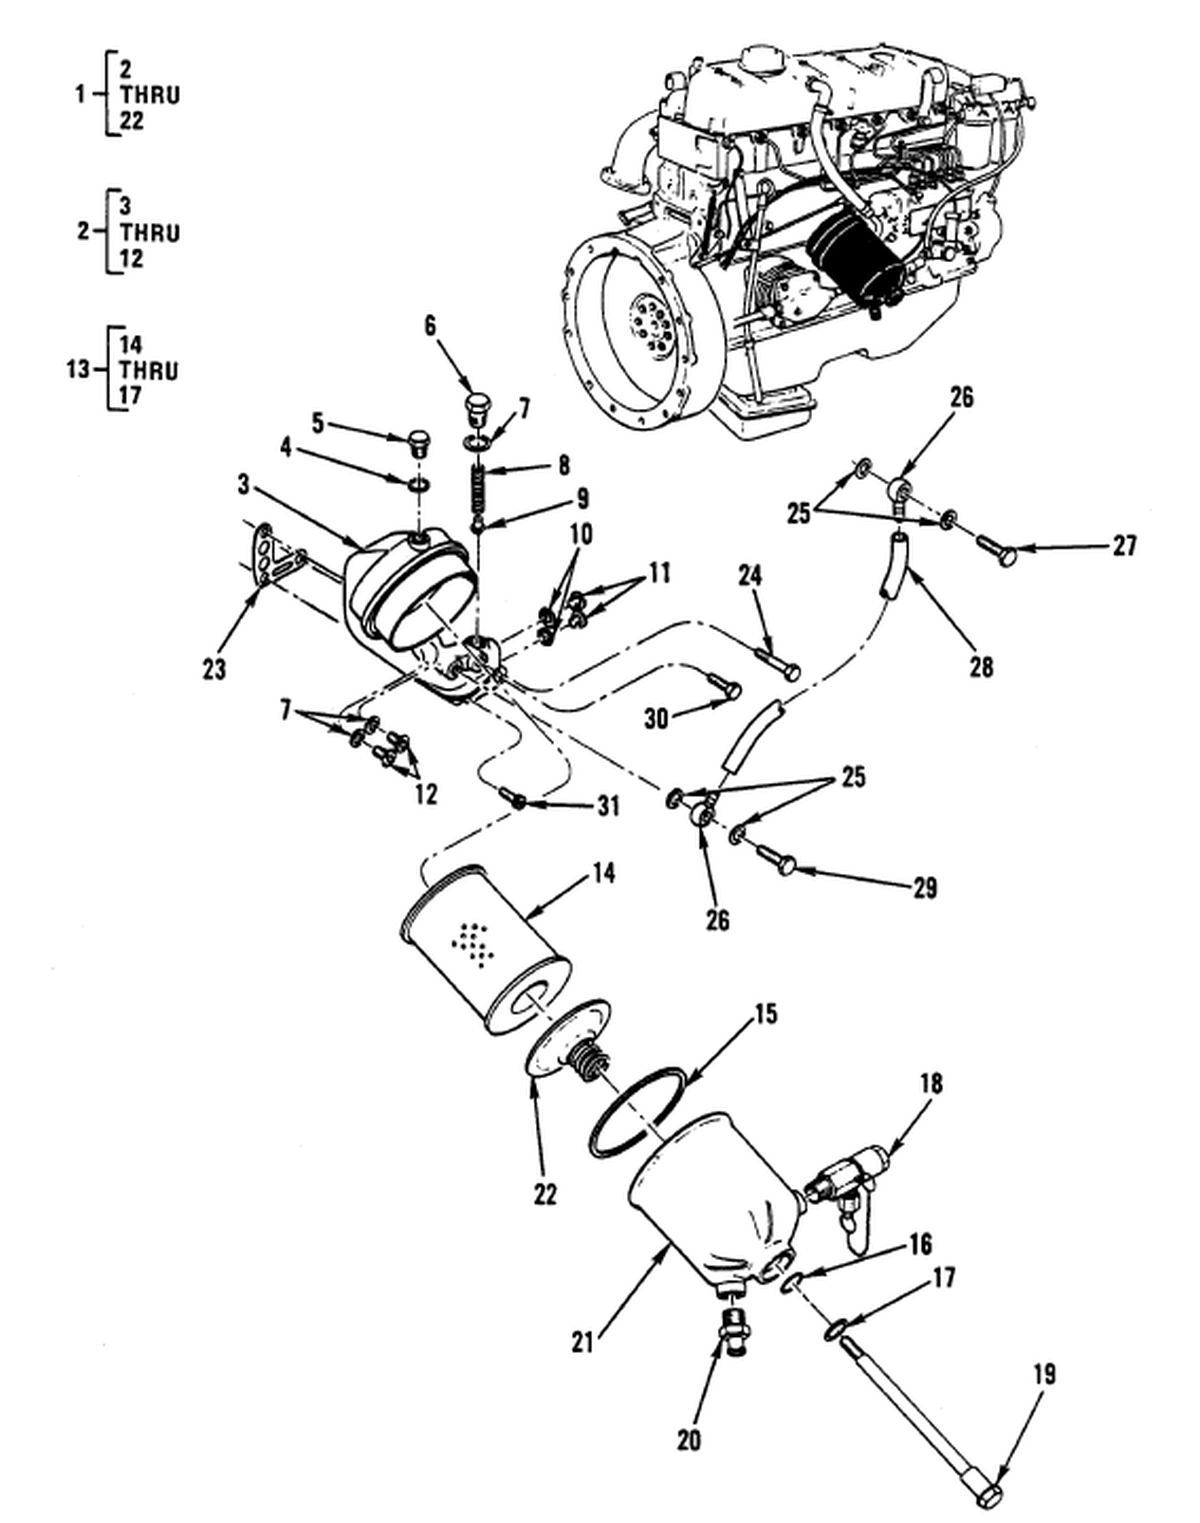 2008 envoy engine diagram oil system continental oil system diagram 0016 00-2 figure 15. engine lubrication system – fluid ... #10